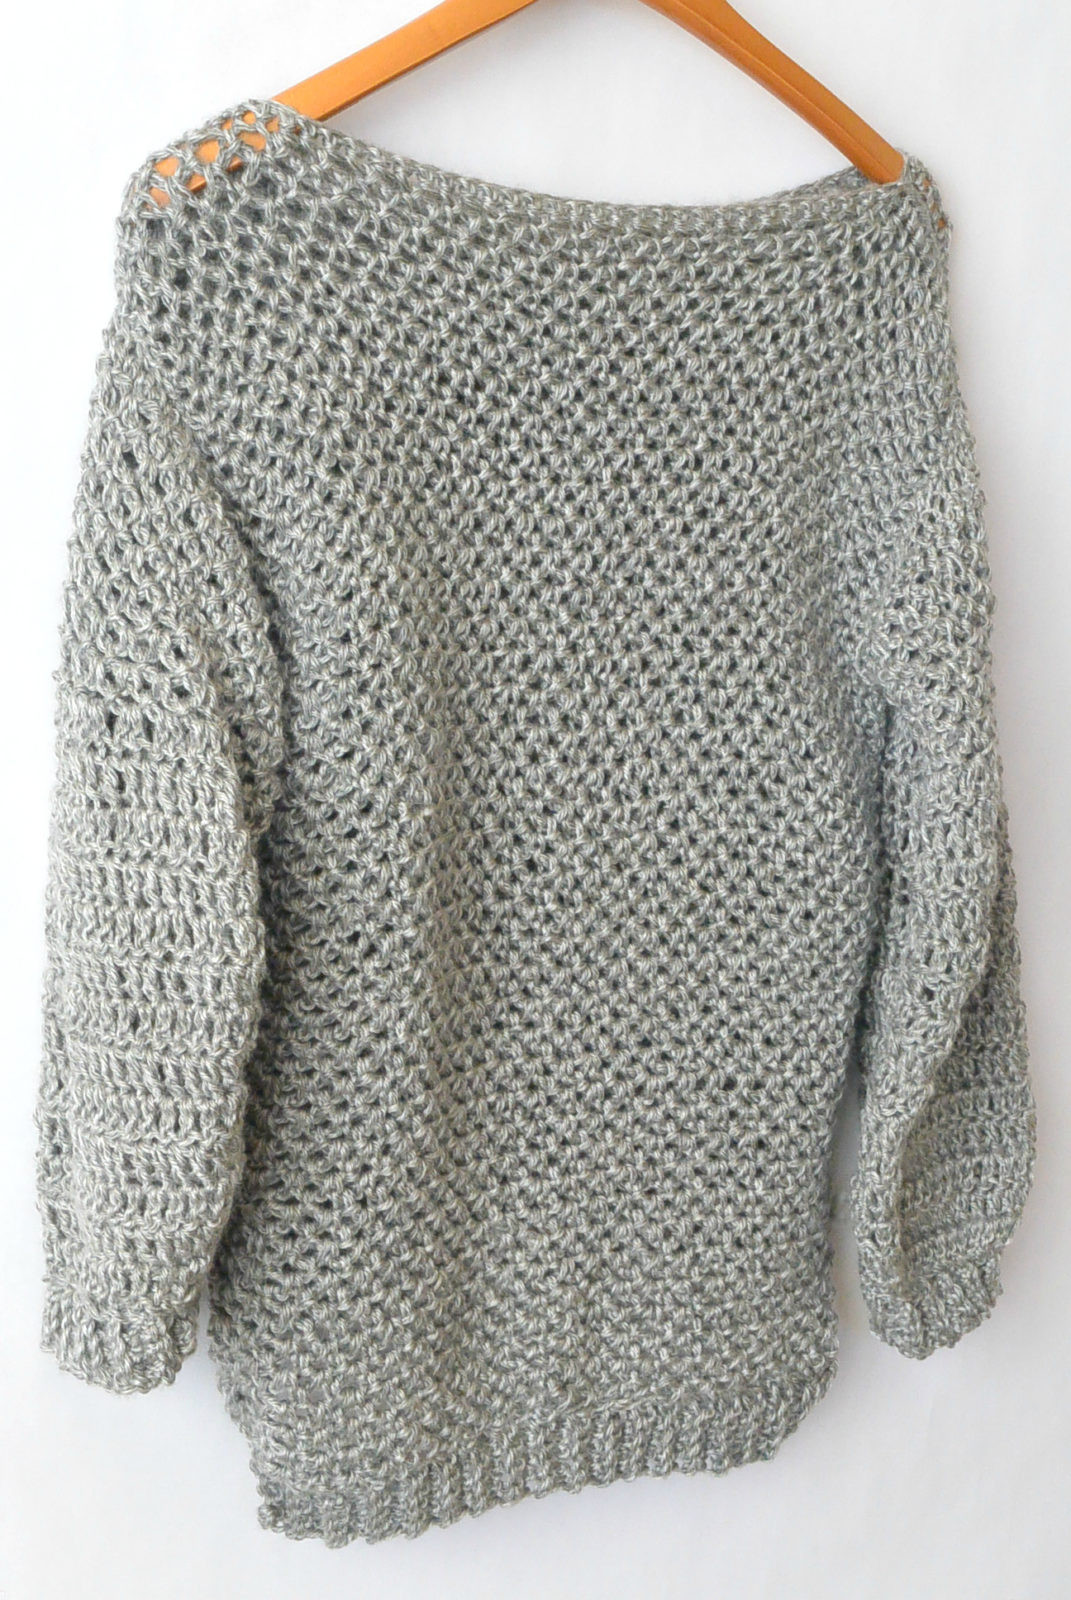 Crochet or Knit New How to Make An Easy Crocheted Sweater Knit Like – Mama Of Superb 42 Pics Crochet or Knit